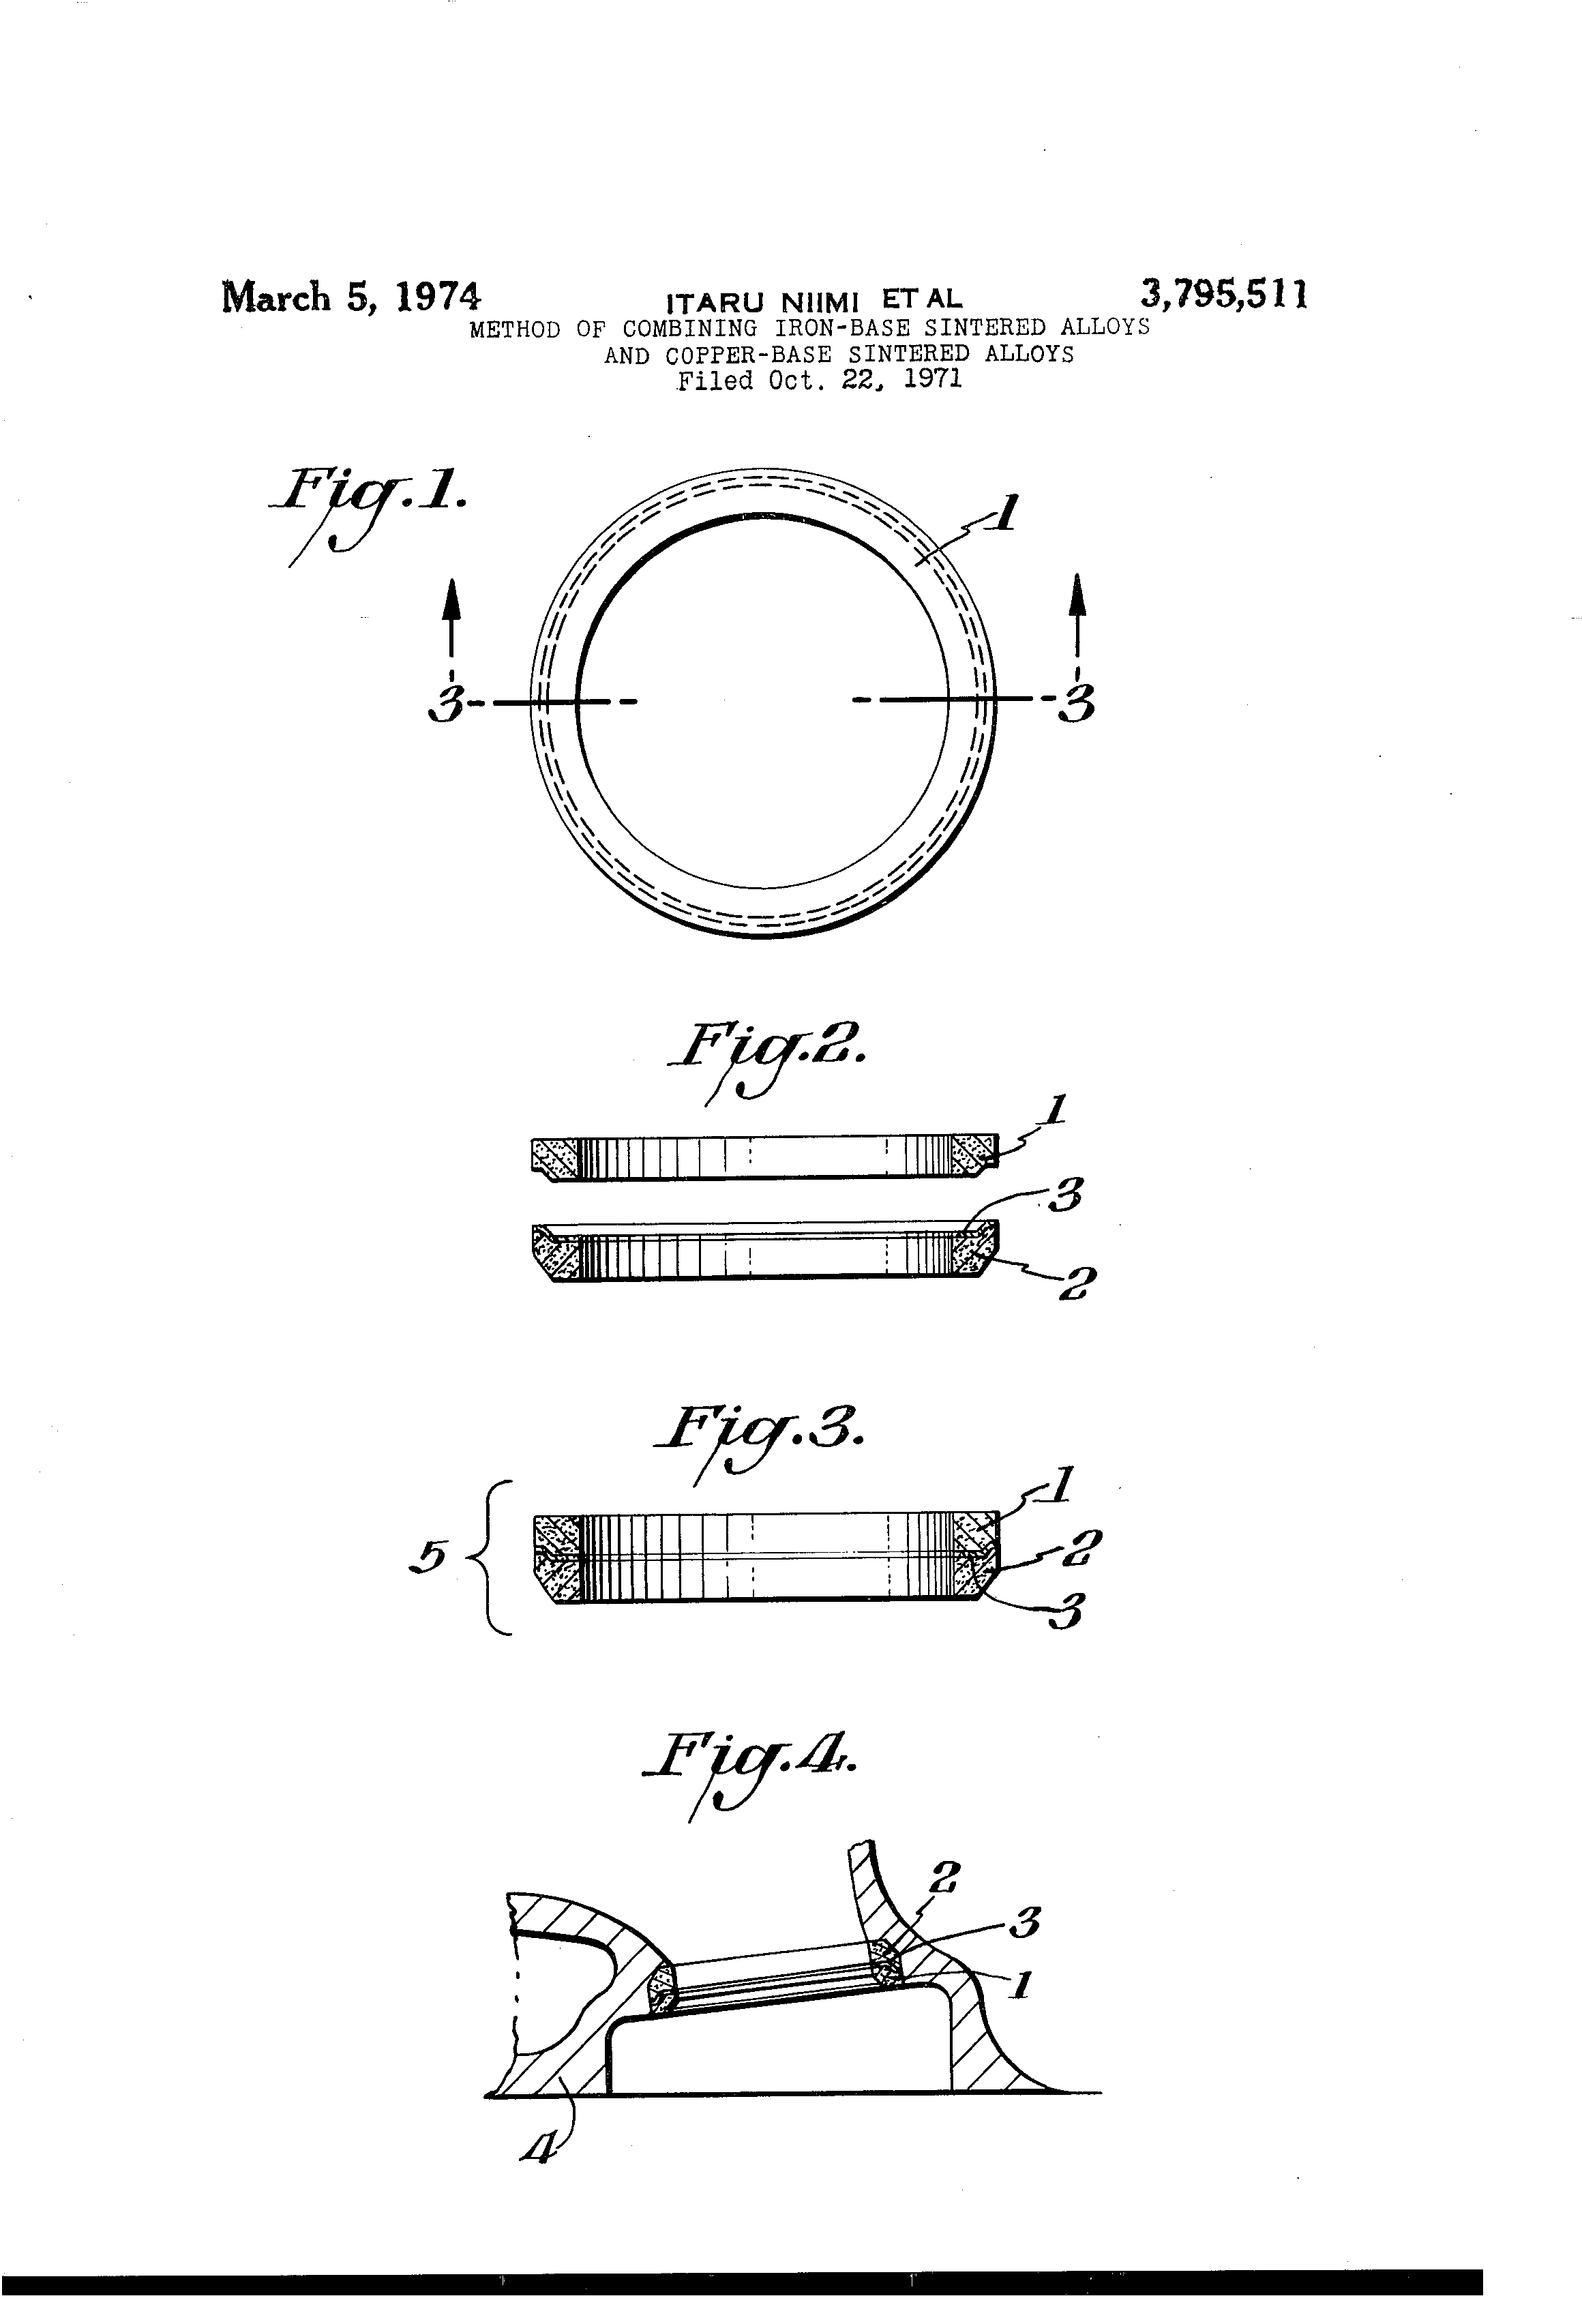 Patente Us3795511 Method Of Combining Iron Base Sintered Alloys Moonshine Still Drawing Diagram Patent